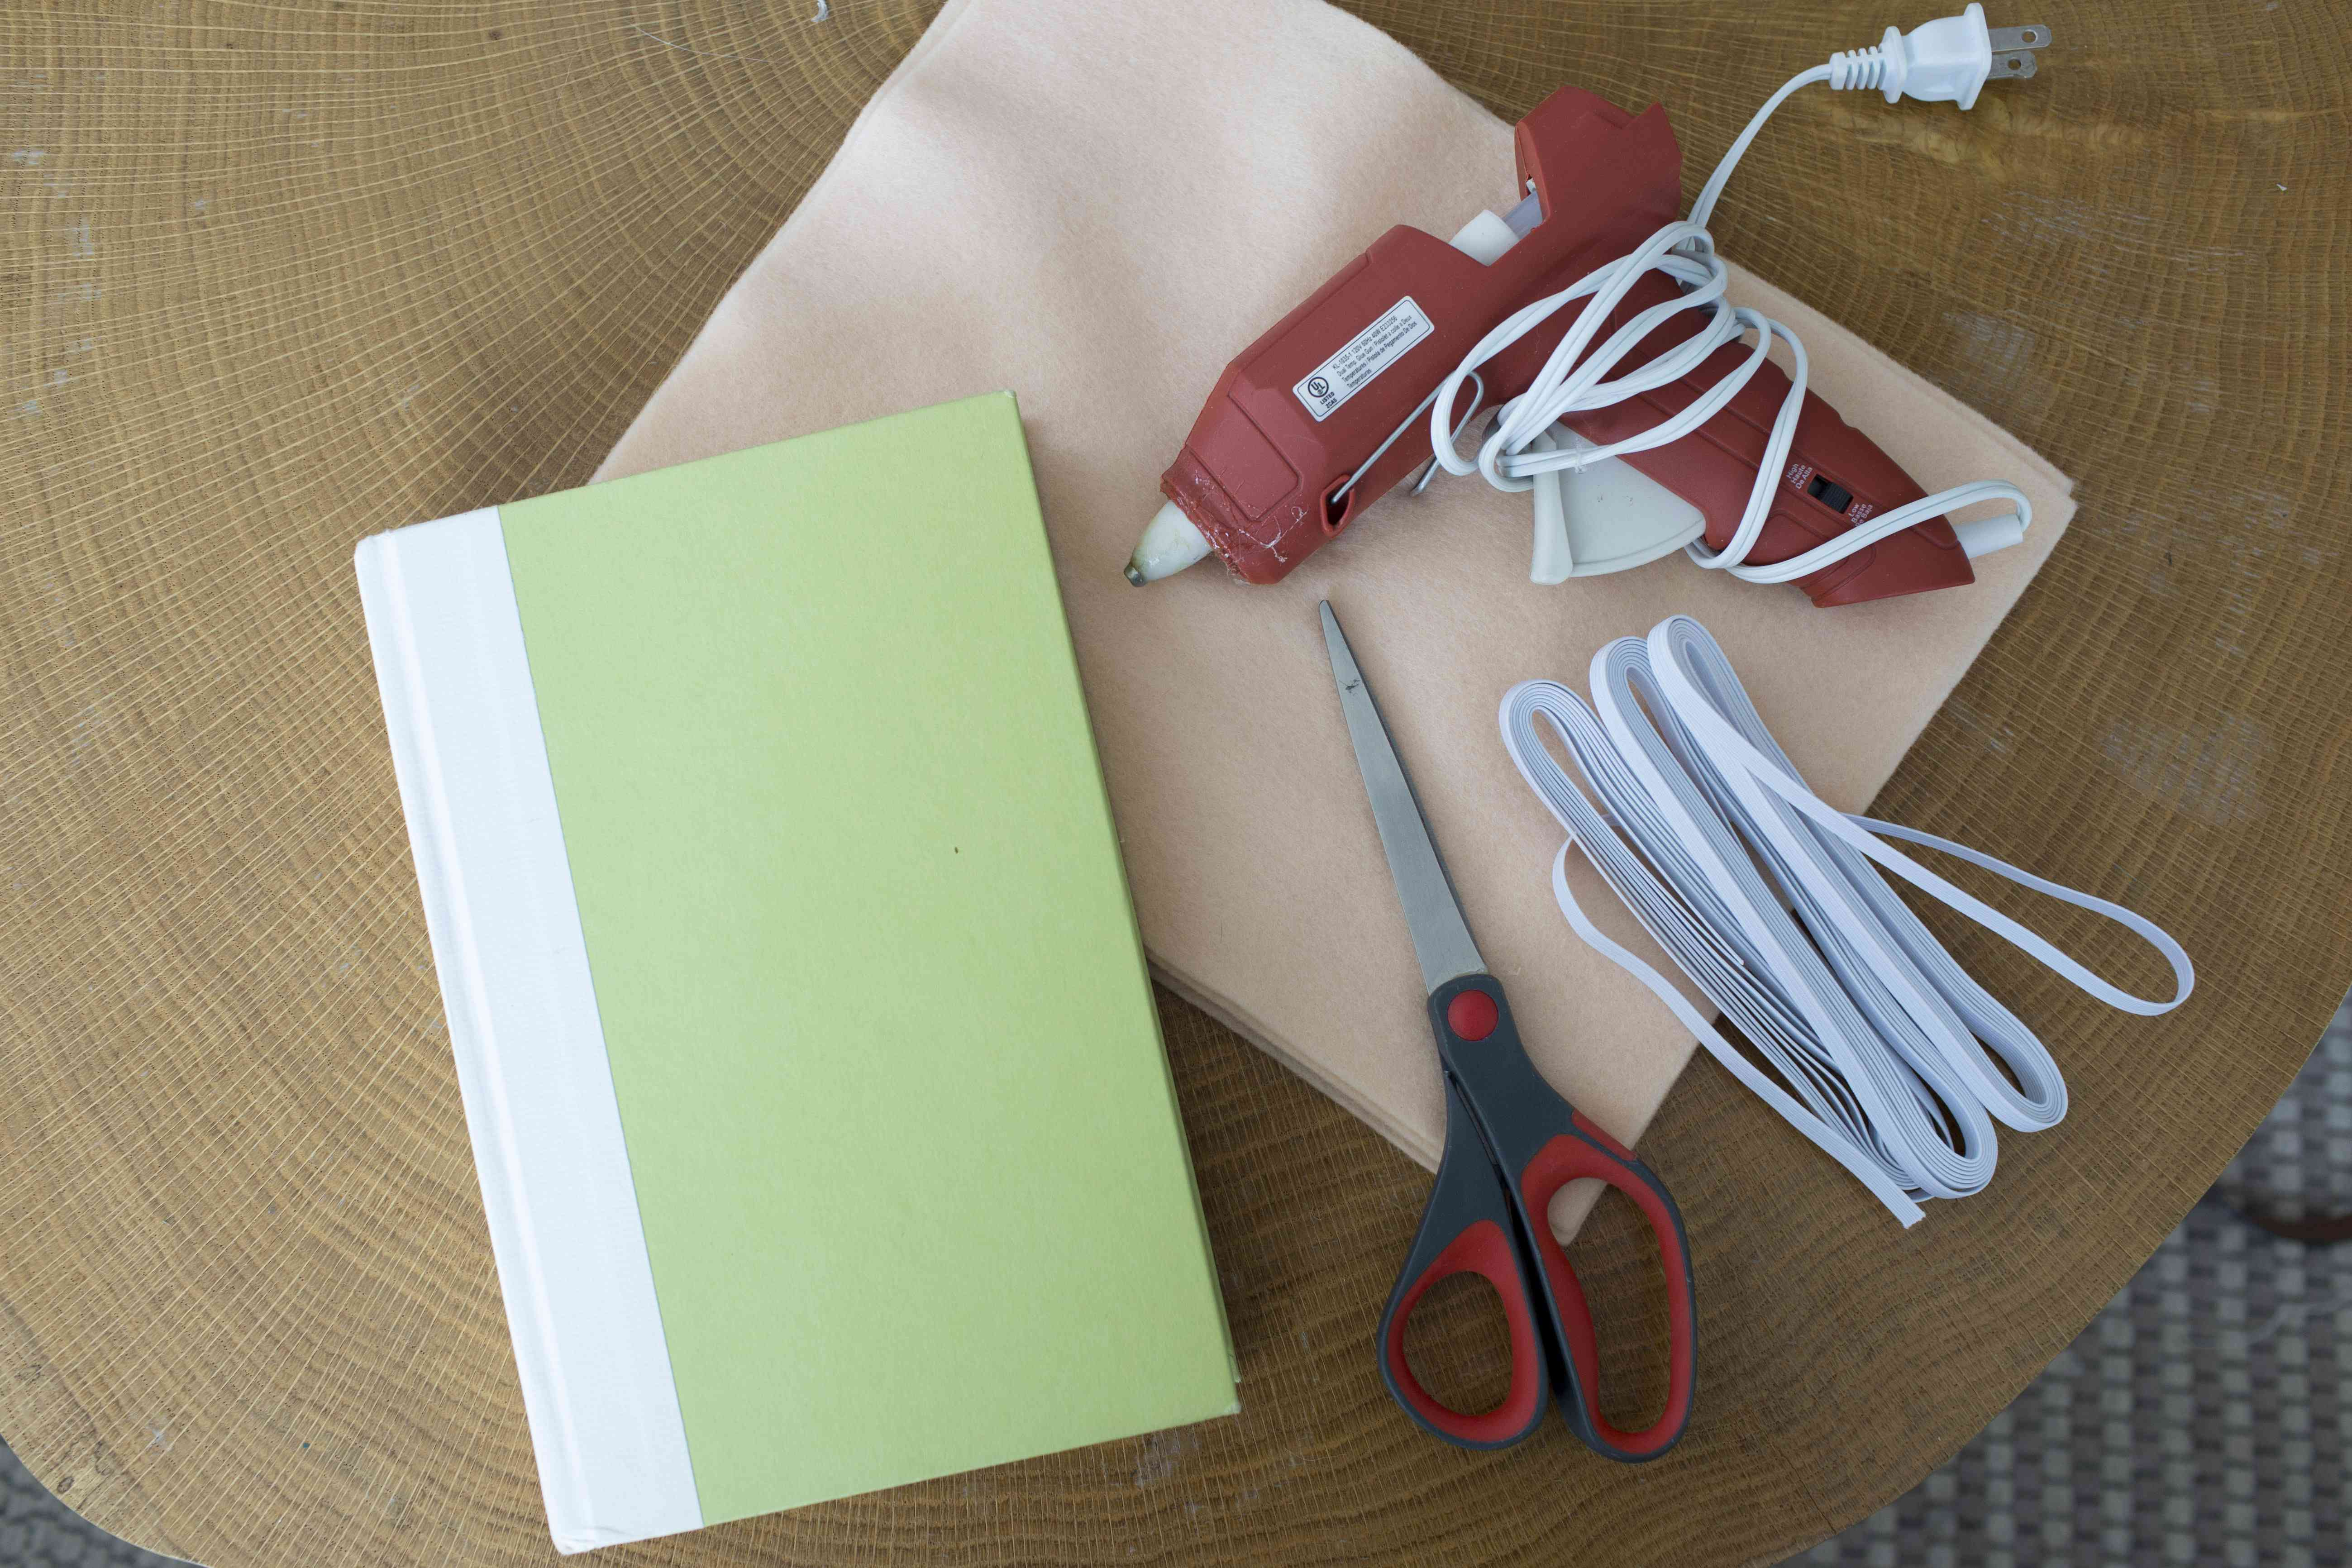 Supplies for making your own tablet case